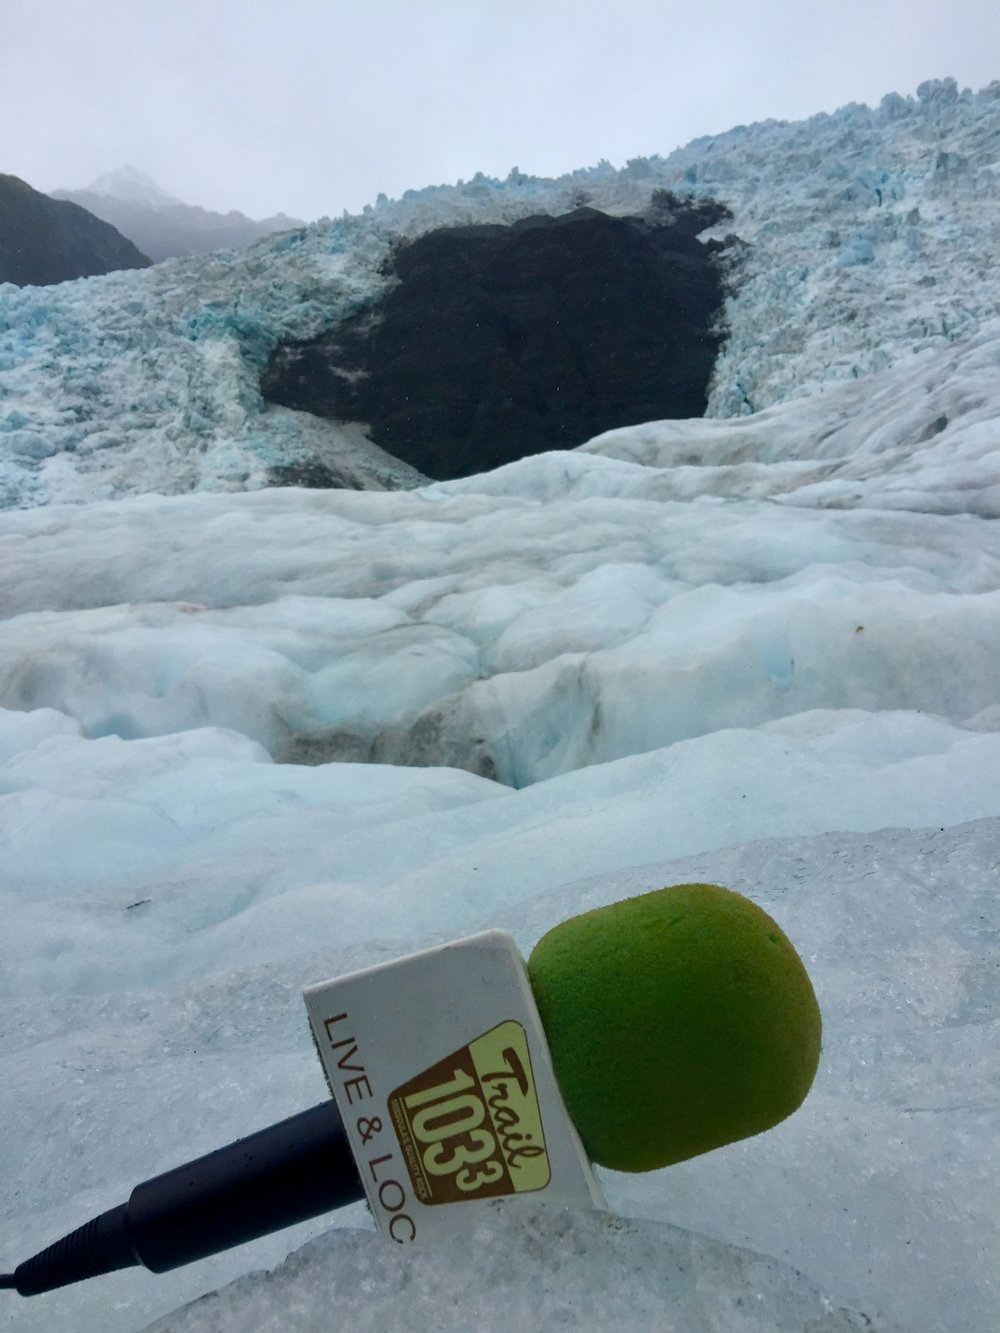 After a 5 minute helicopter flight from the Tasman Sea, this interview was recorded on a hanging glacier in the Southern Alps. Featuring glaciology of the planet with a focus on Franz Josef Glacier. Recorded on moving ice while trekking the Franz Josef Glacier on the west coast of New Zealand's South Island.